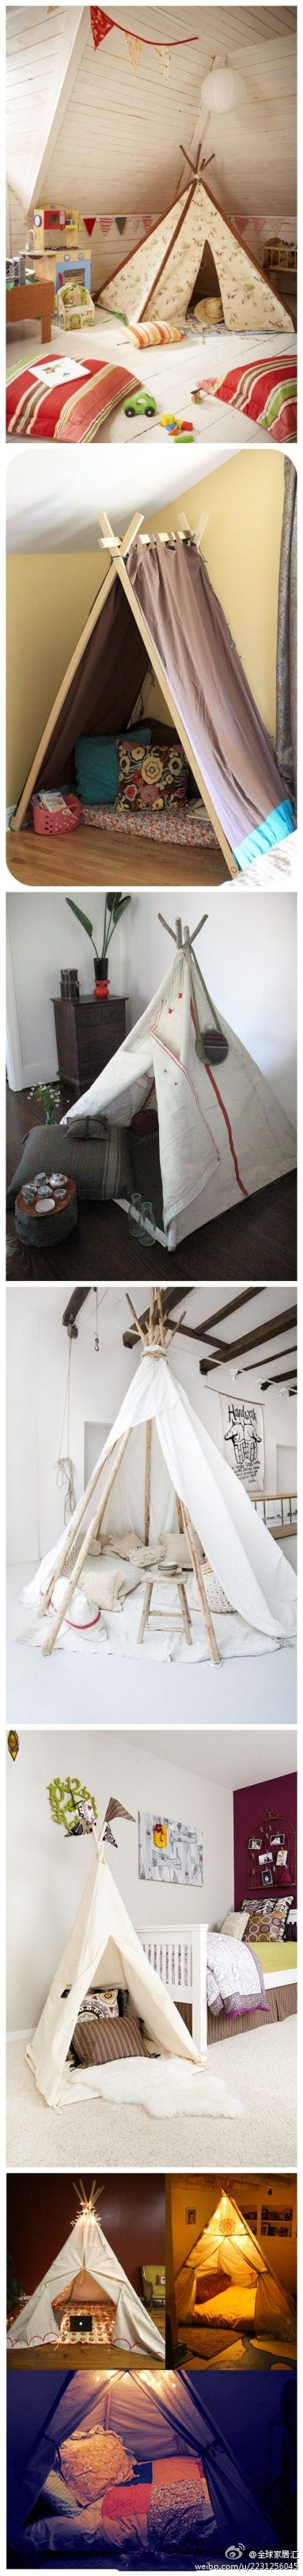 Great idea for kids play corner or even a playroom, if you're fortunate enough to have - could even incorporated I to a classroom environment. Love these teepees ❤❤❤